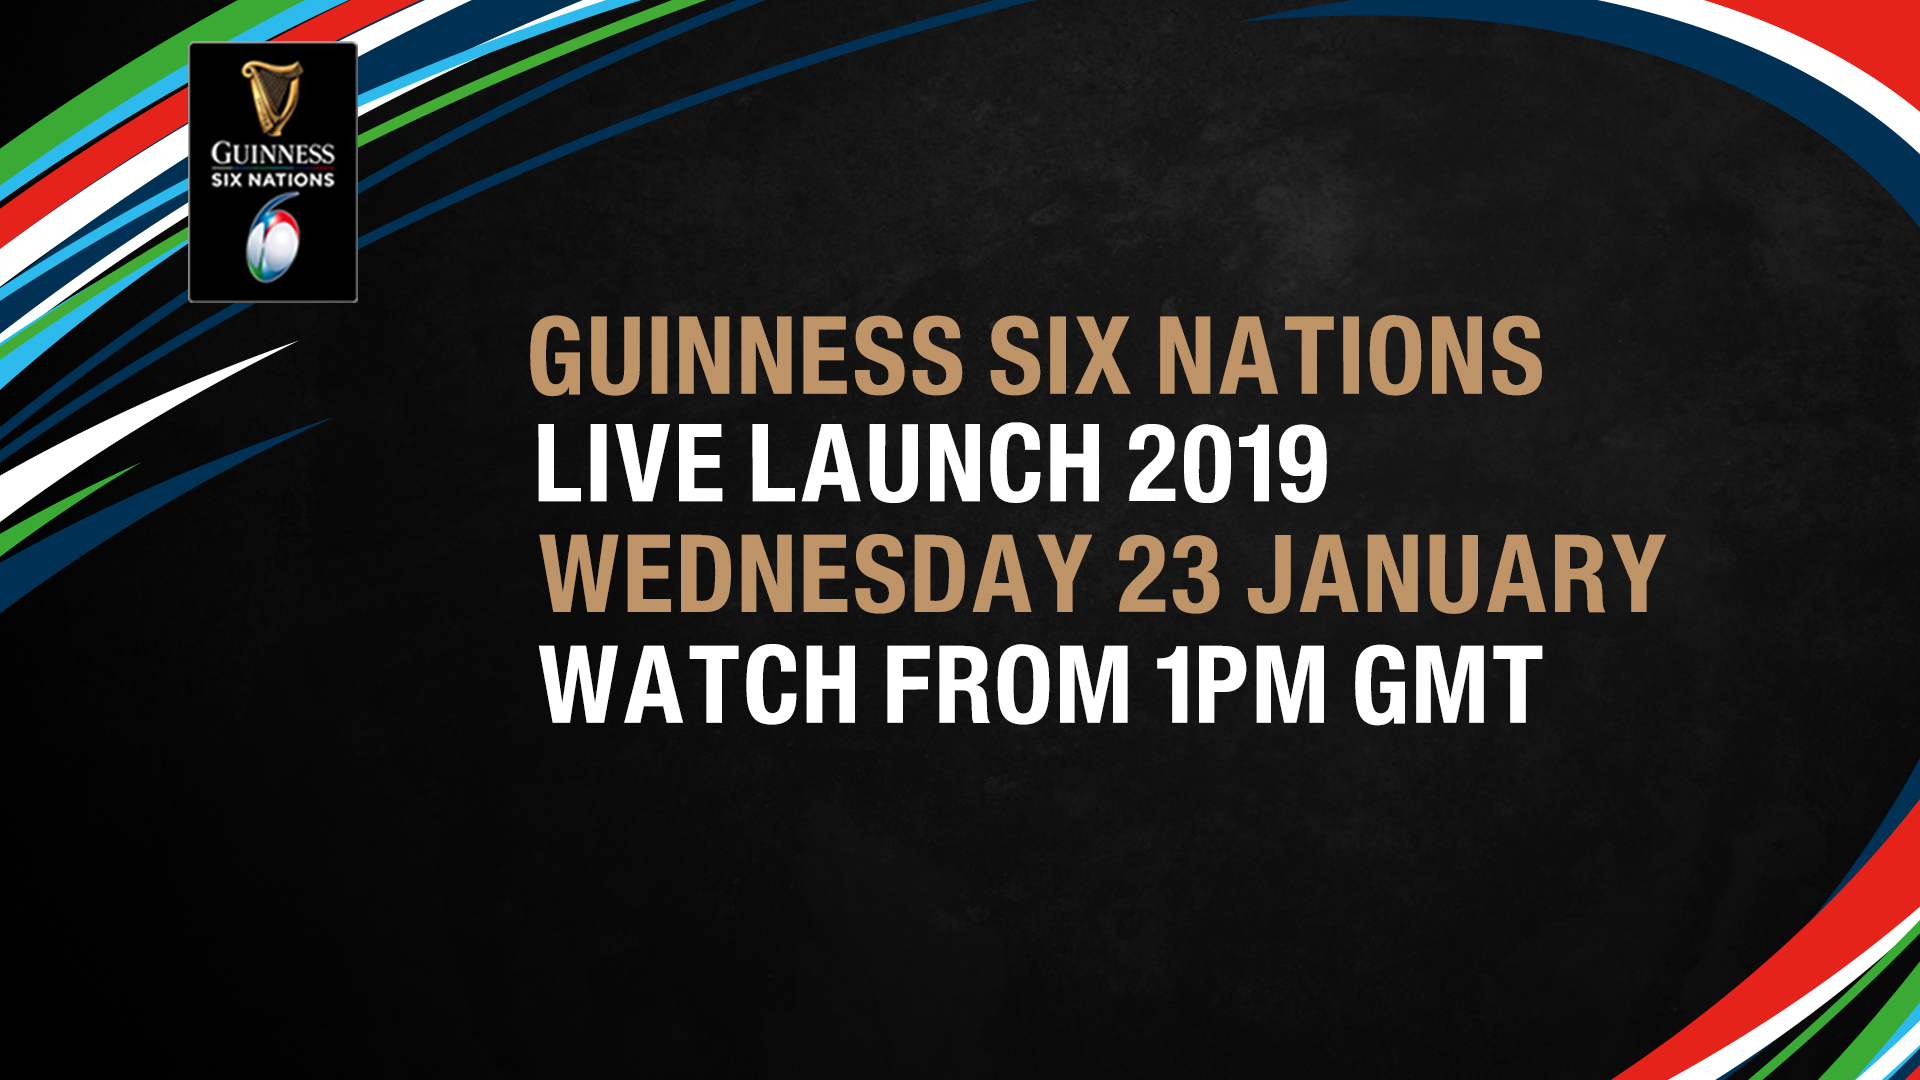 Live Launch 2019 – Watch the Guinness Six Nations launch LIVE today